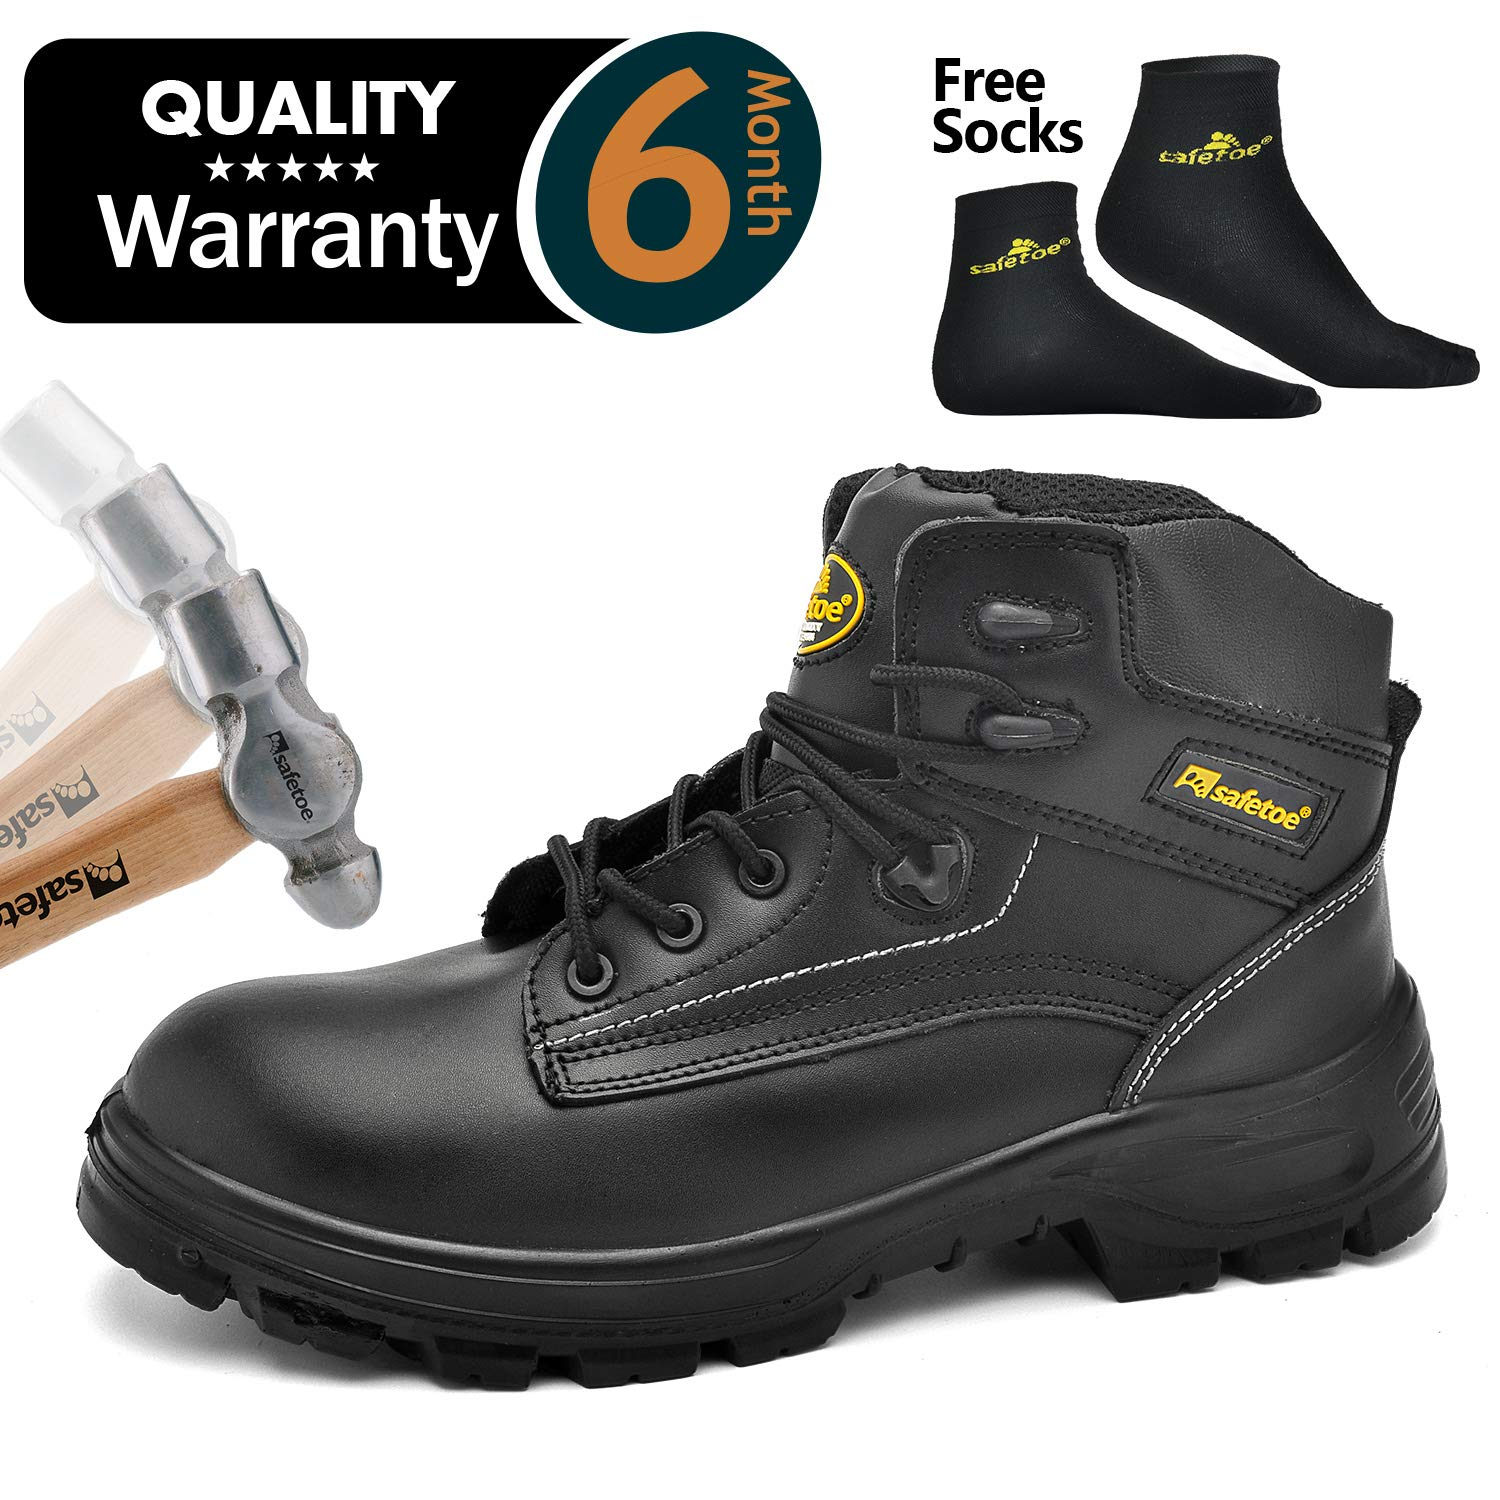 SAFETOE Mens Safety Boots Work Shoes - M8356B Black Waterproof Leather Work Boots Steel Toe Safety Shoes